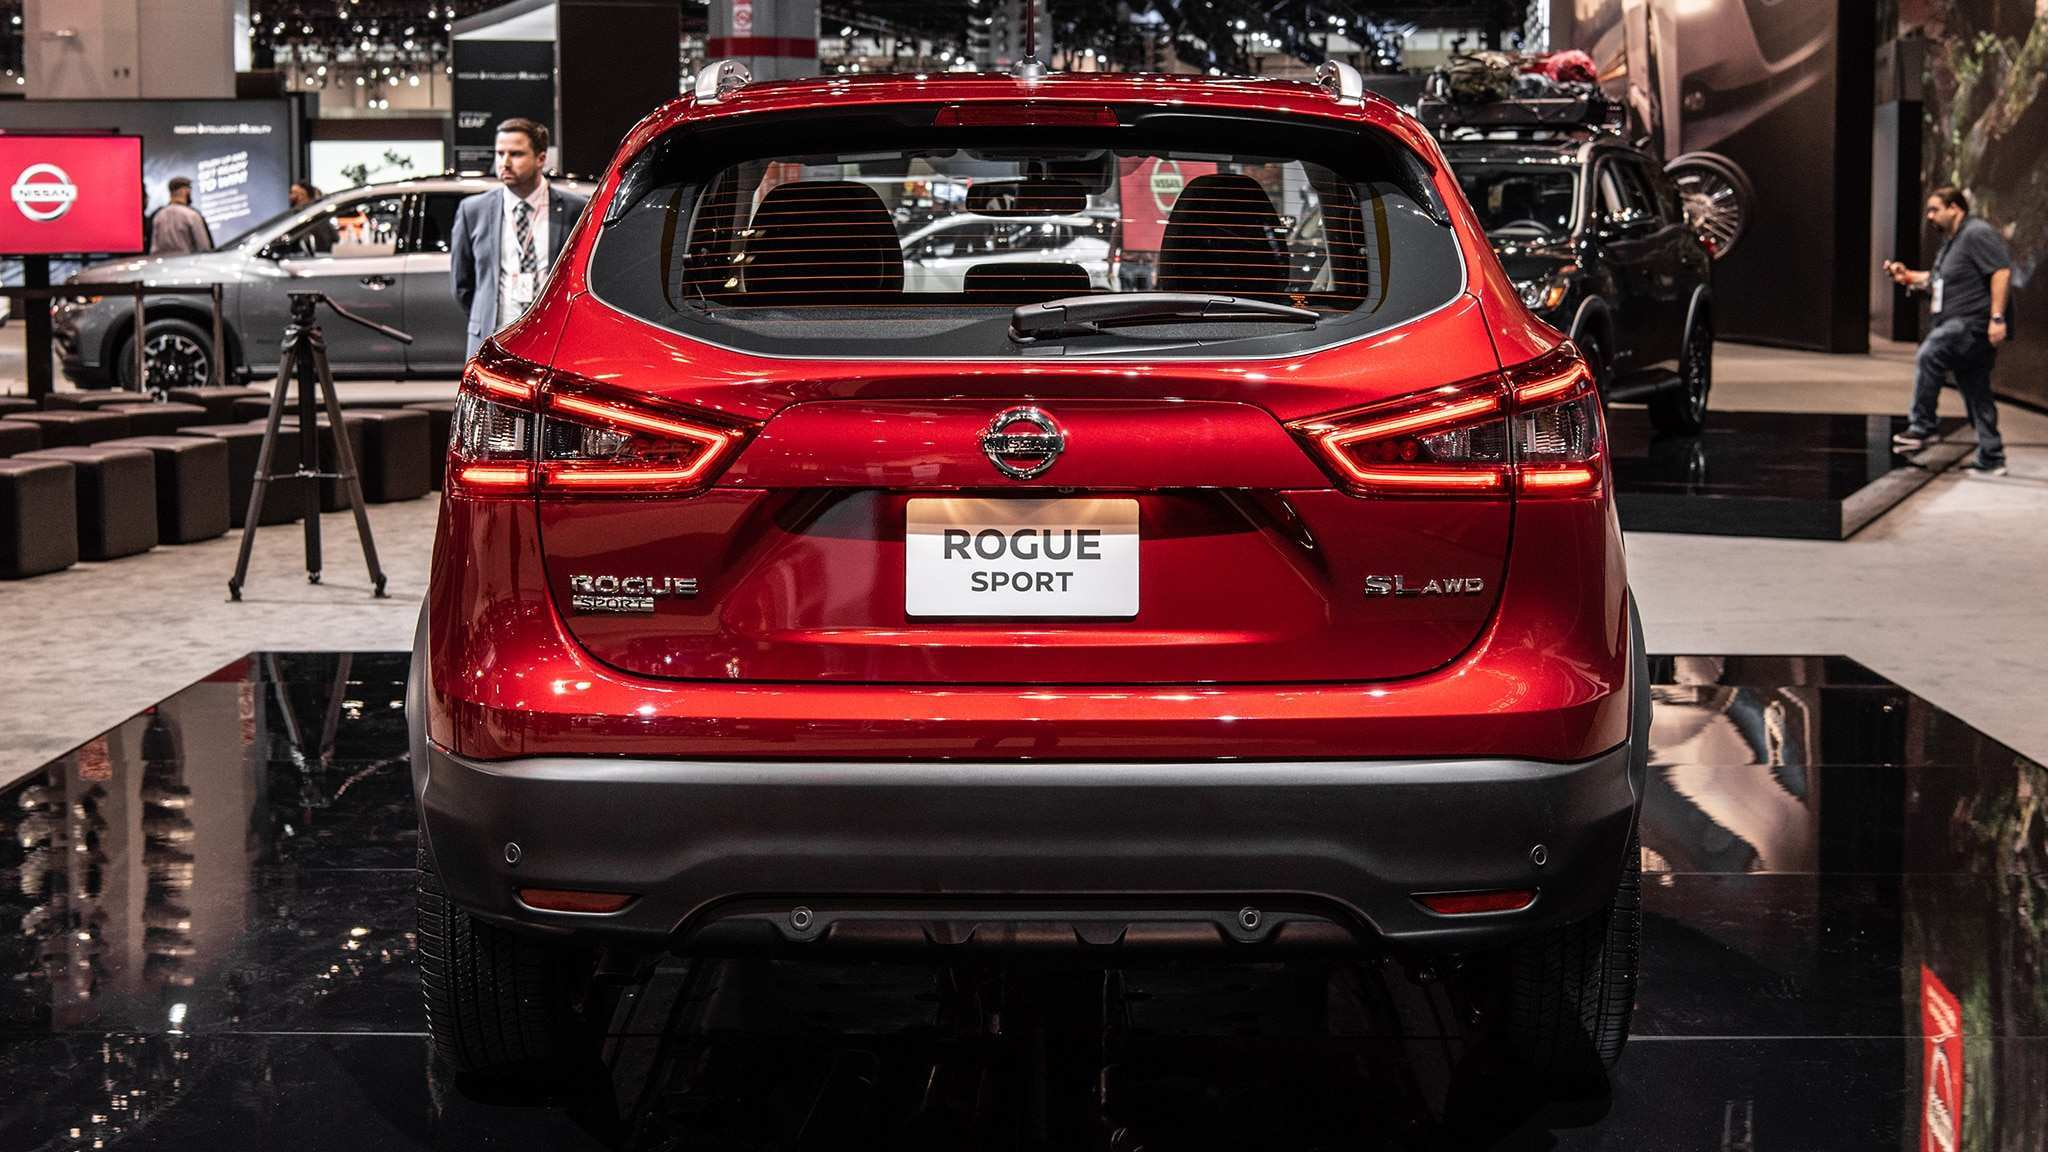 42 Best Review When Does The 2020 Nissan Rogue Come Out Images for When Does The 2020 Nissan Rogue Come Out